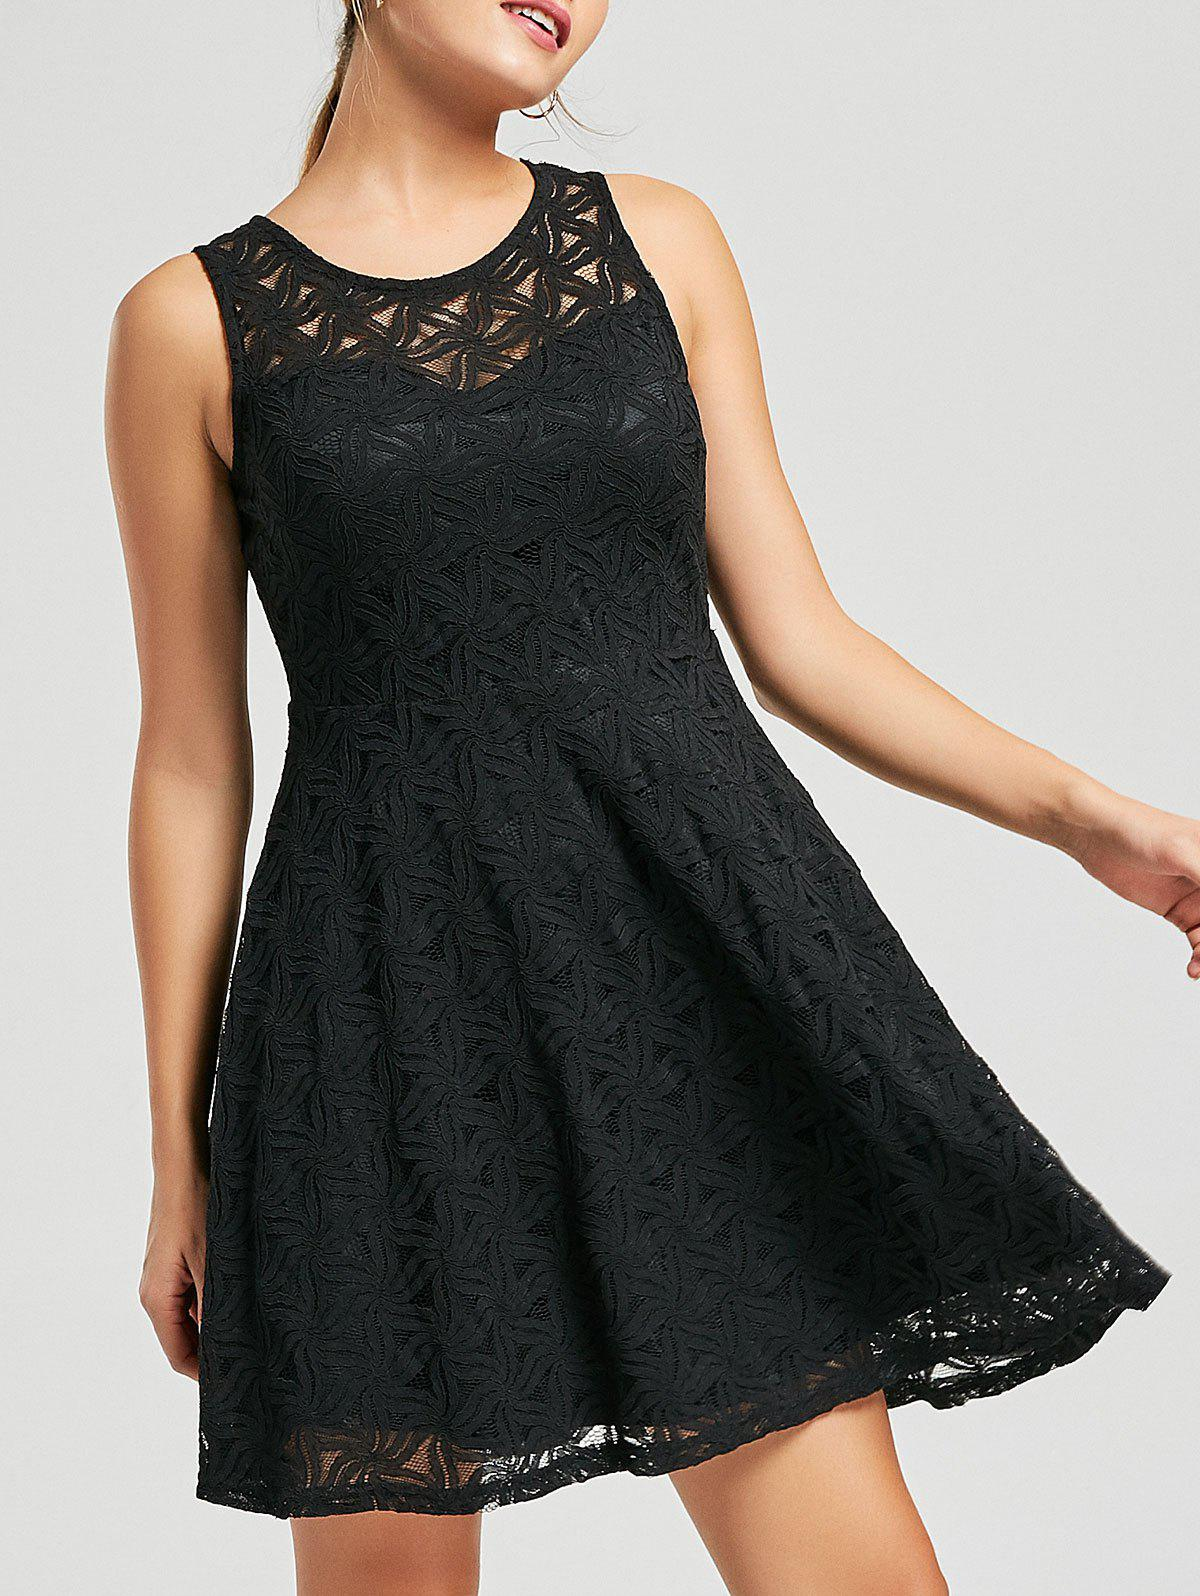 Sleeveless Lace Mini Cocktail Dress - BLACK L